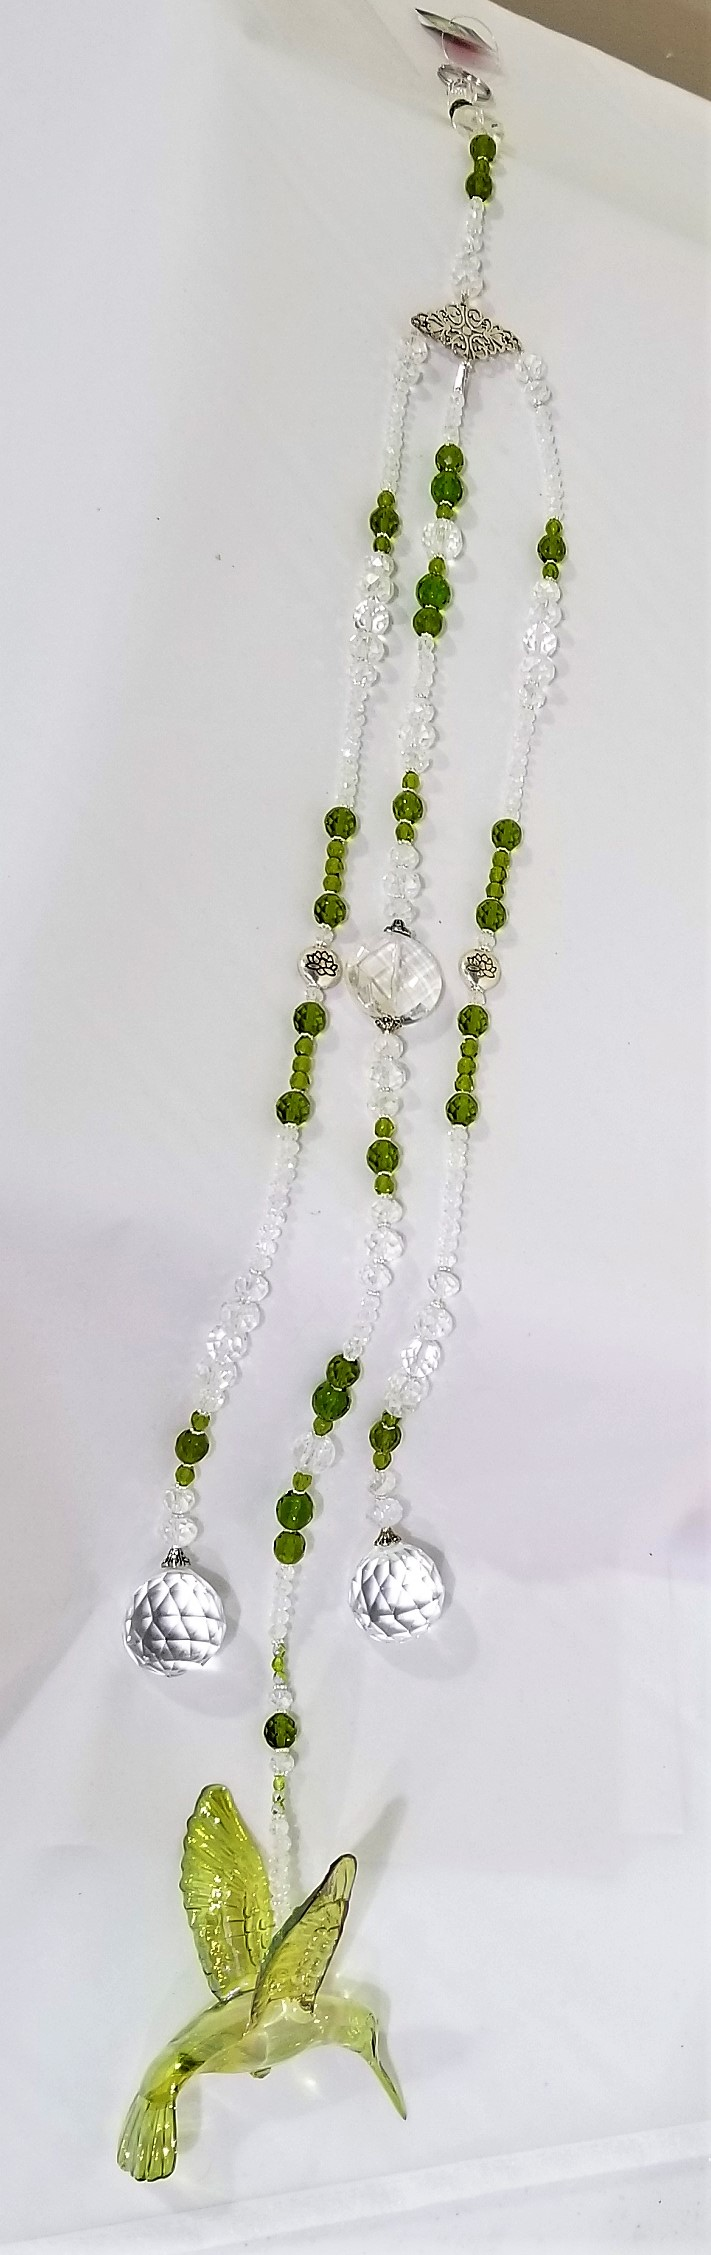 Green Crystal Suncatcher, by Enchanted Creations